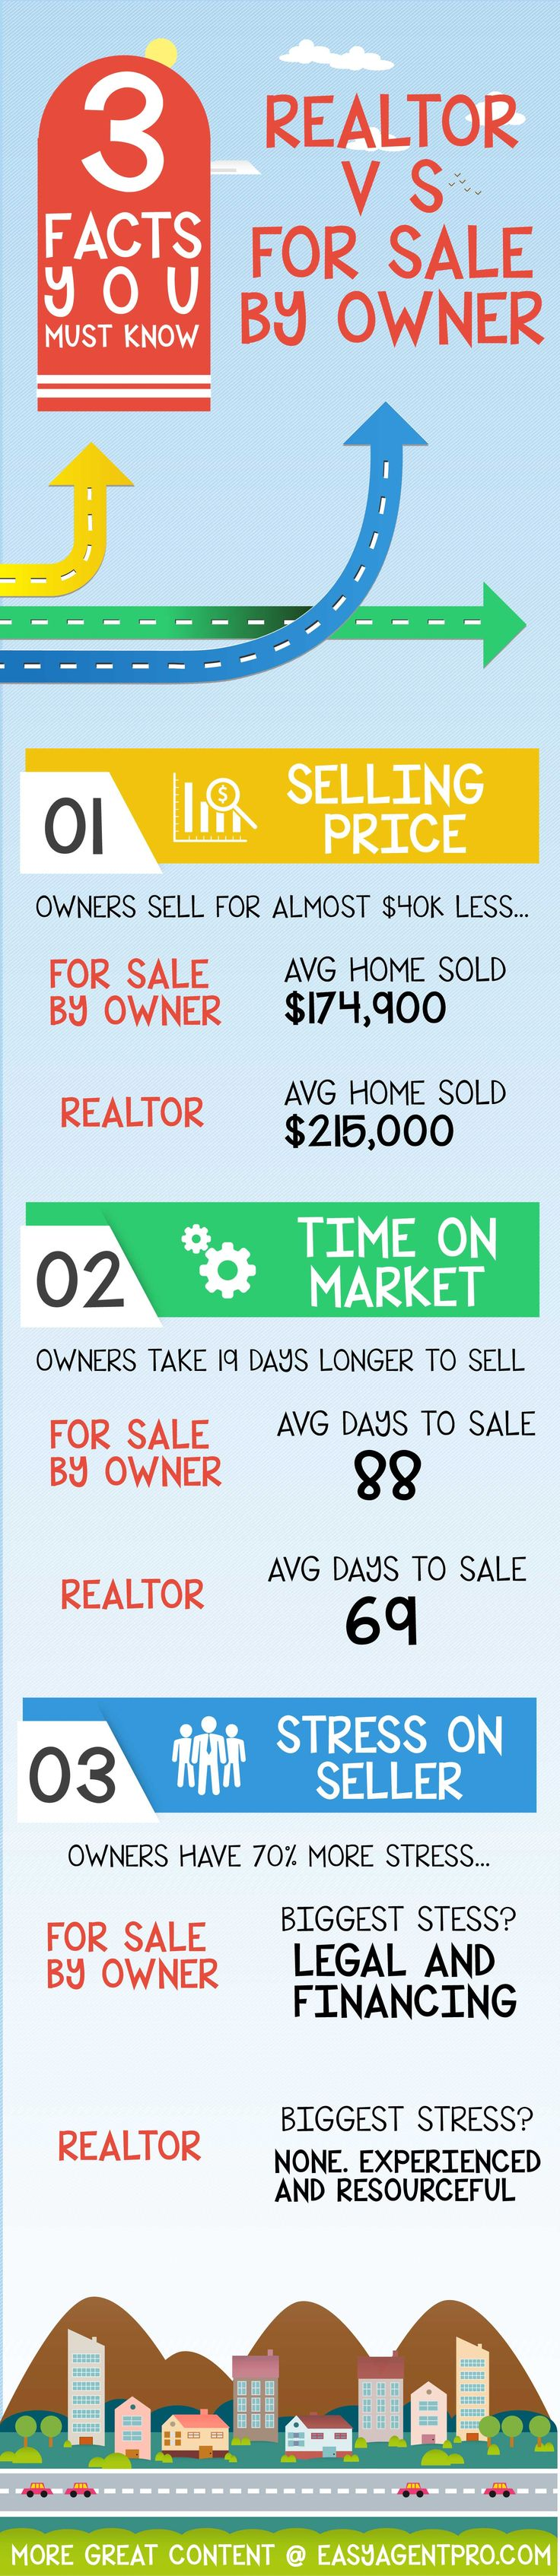 facts about fsbo 3 facts you must know as a realtor infographic